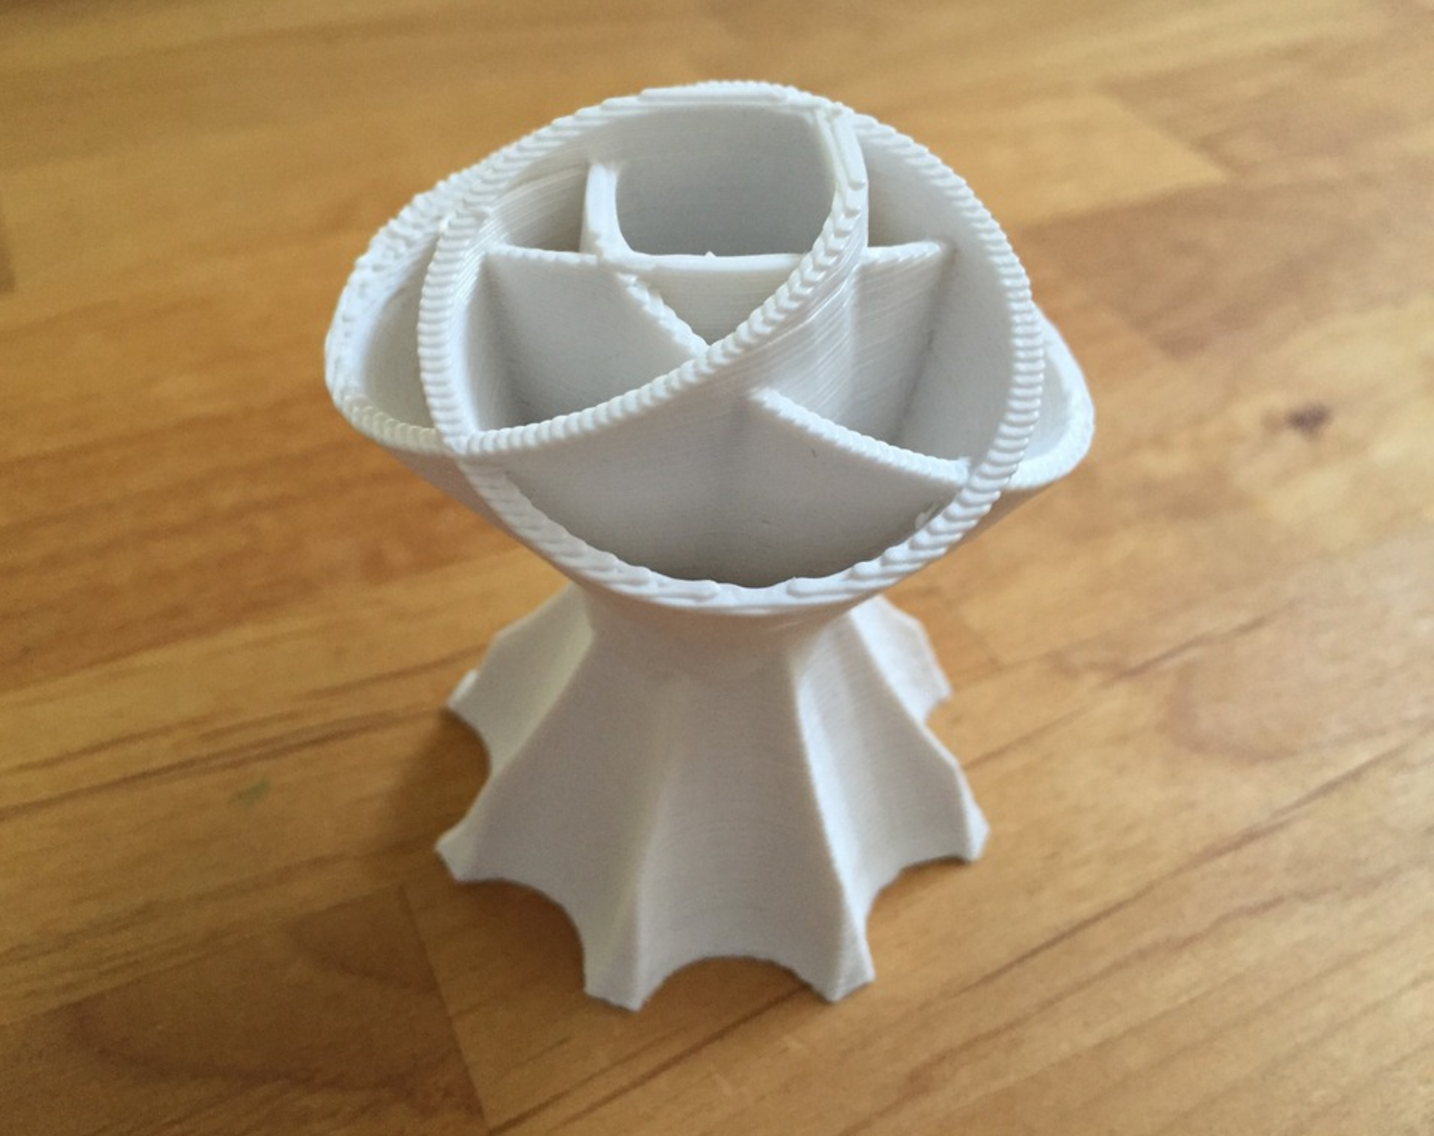 Capture d'écran 2017-05-09 à 16.06.13.png Download free STL file flower separator vase • 3D printing design, squiqui